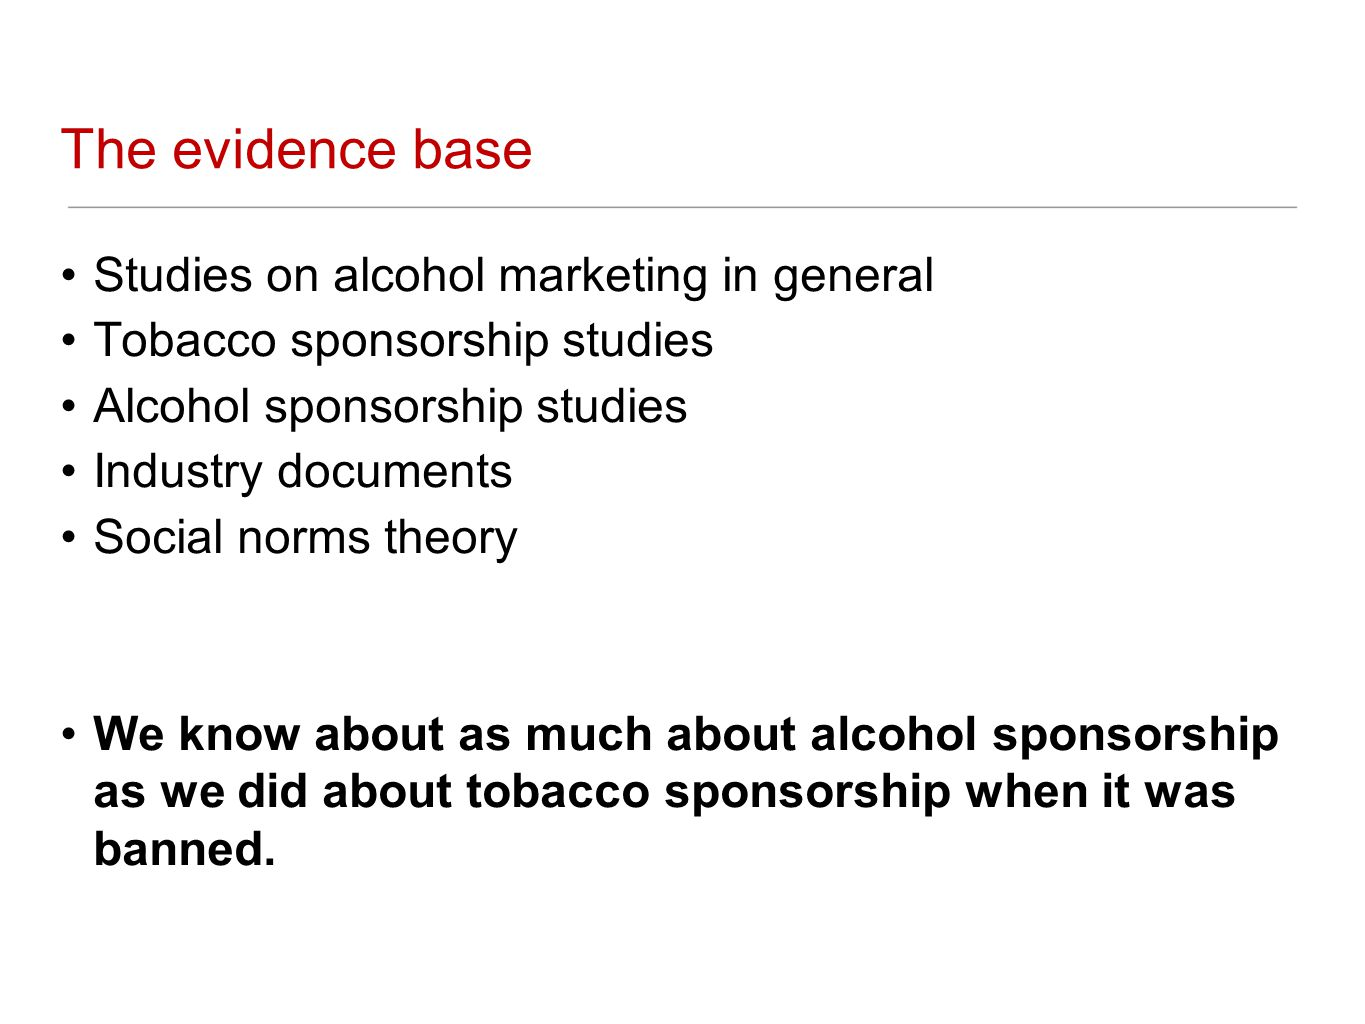 The evidence base Studies on alcohol marketing in general Tobacco sponsorship studies Alcohol sponsorship studies Industry documents Social norms theory We know about as much about alcohol sponsorship as we did about tobacco sponsorship when it was banned.